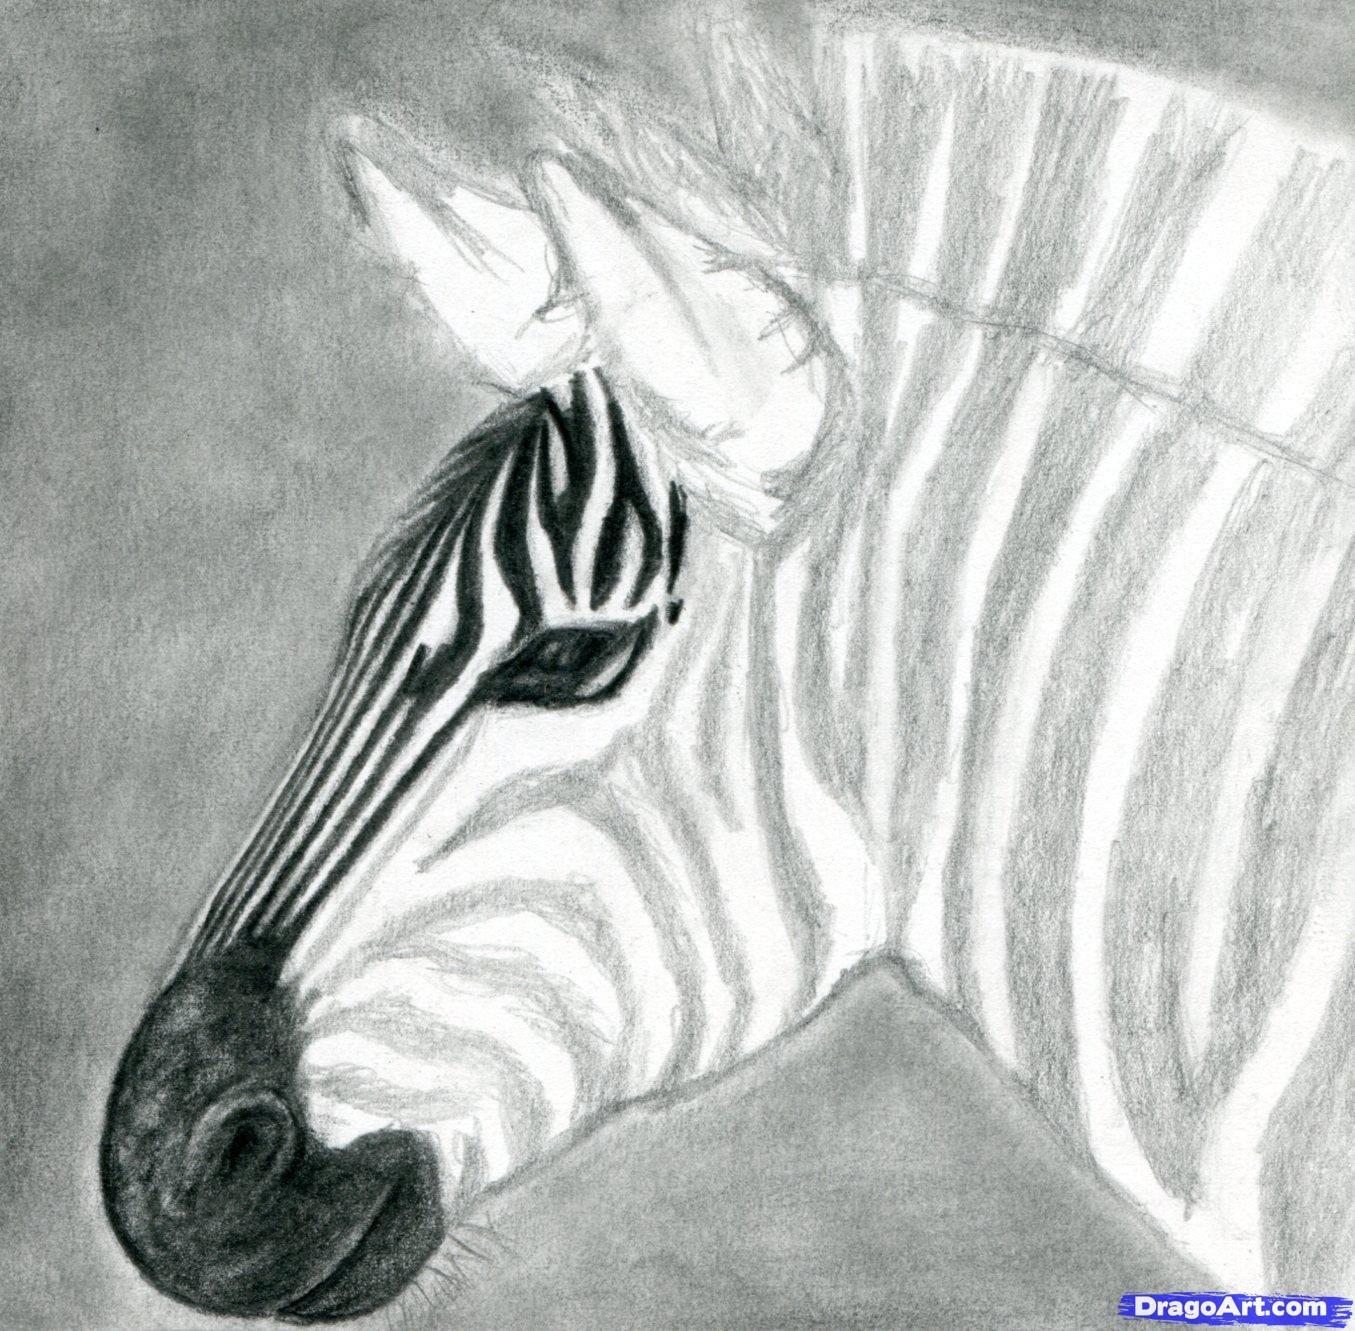 How to draw a zebra draw a realistic zebra step by step safari animals animals free online drawing tutorial added by finalprodigy december 6 2011